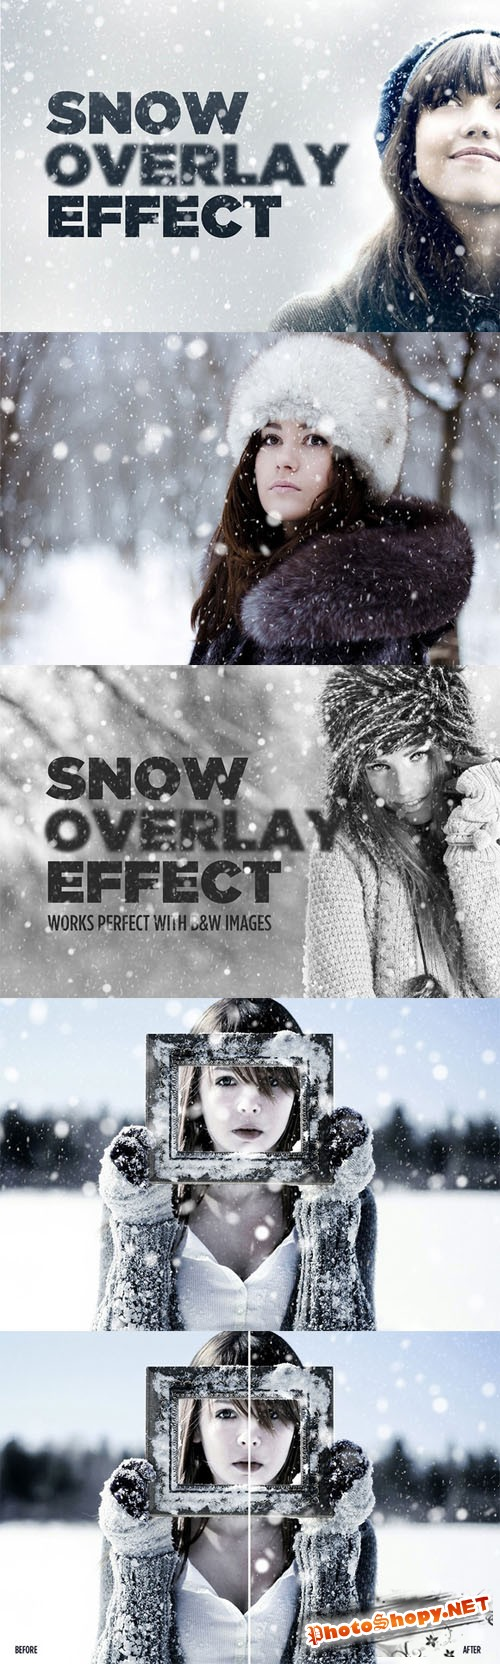 Snowy Day Overlay Effect - Creativemarket 132058